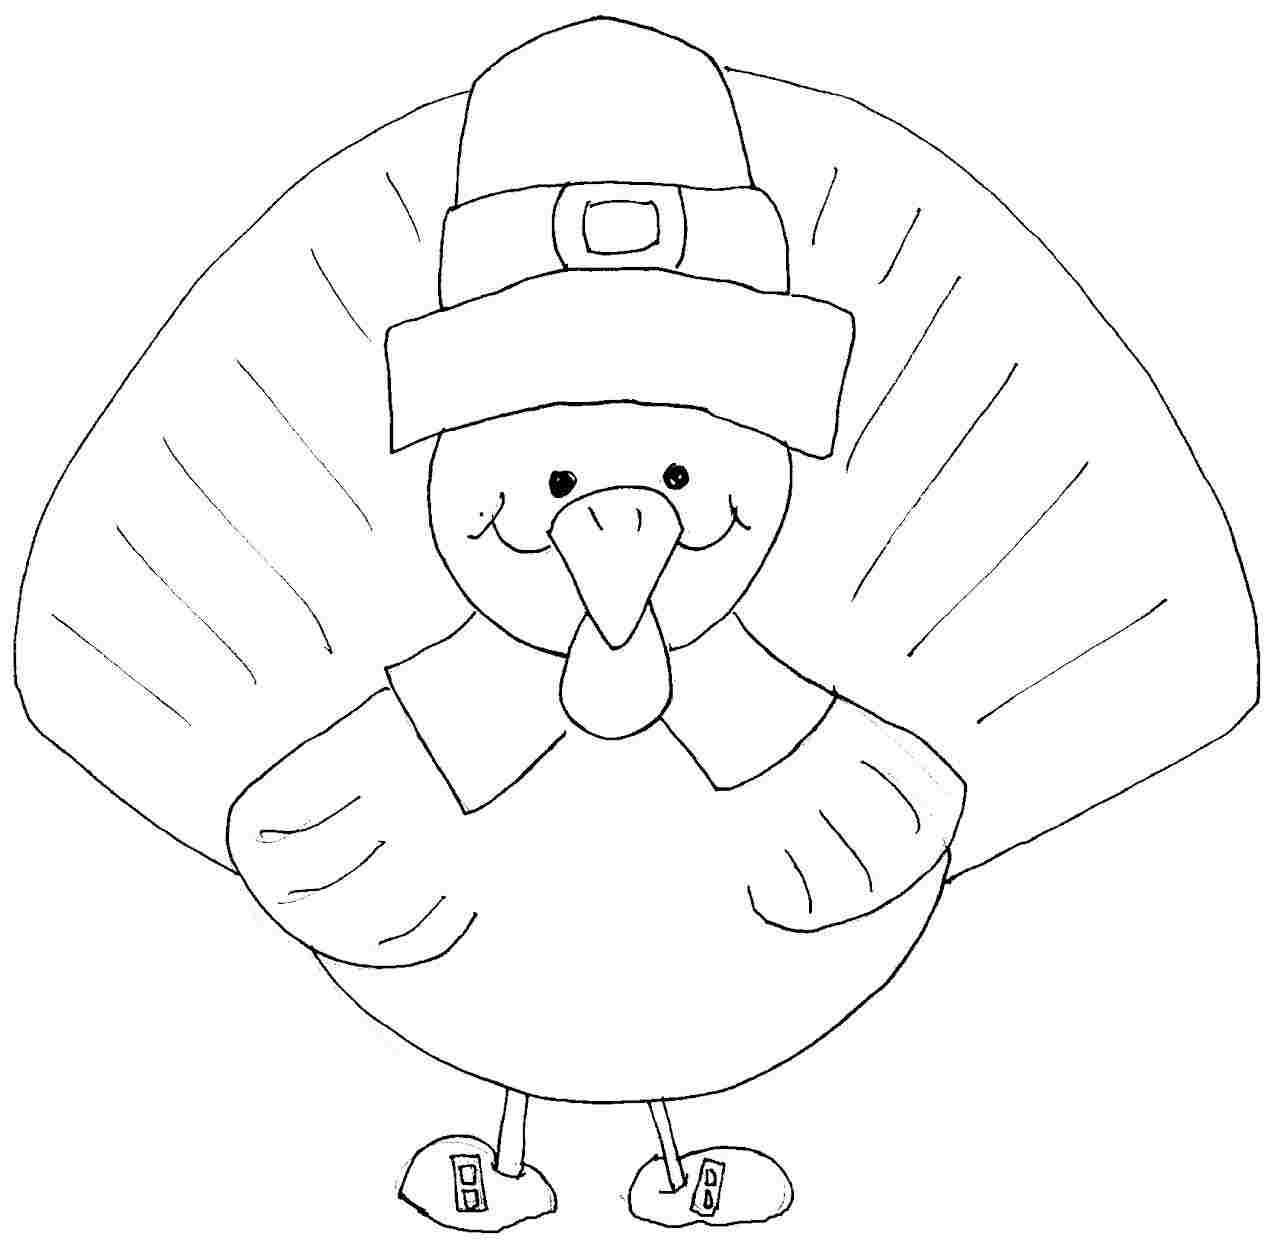 Printable Turkey Coloring Pages for Toddlers